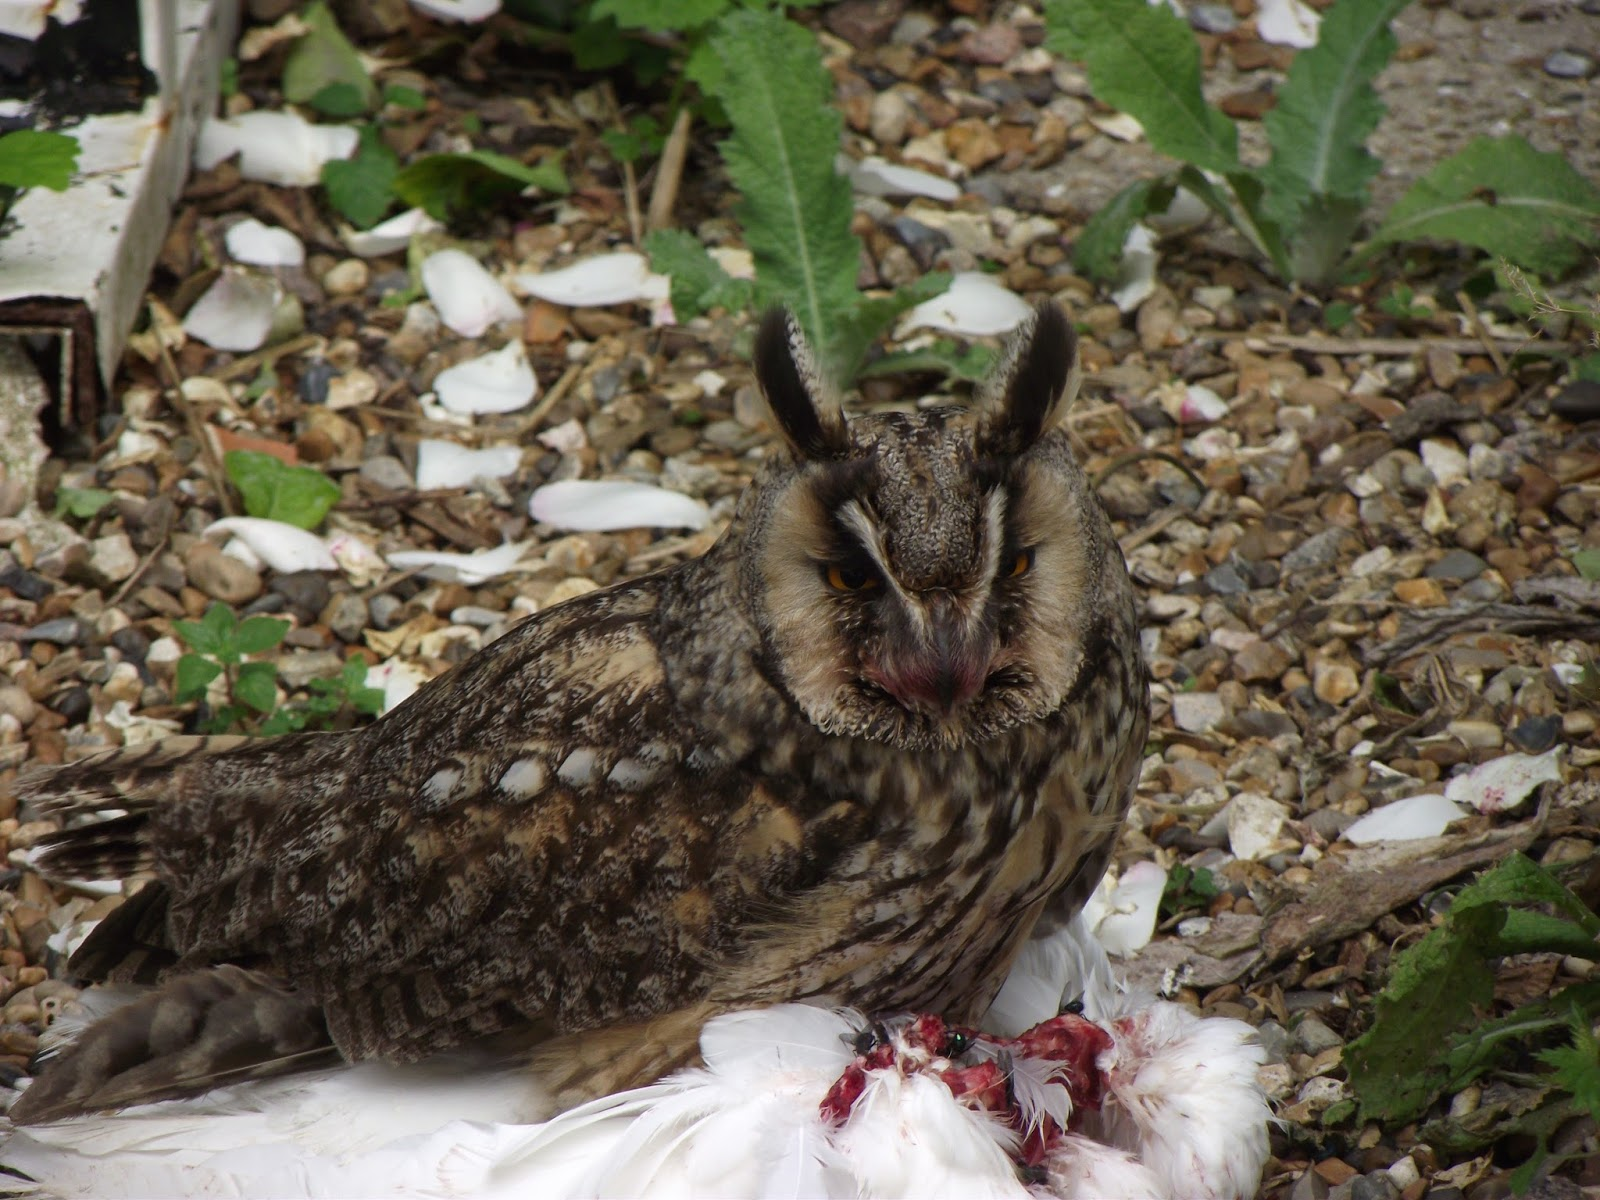 LETTERS FROM SHEPPEY: More Flowers and a Surprise Owl